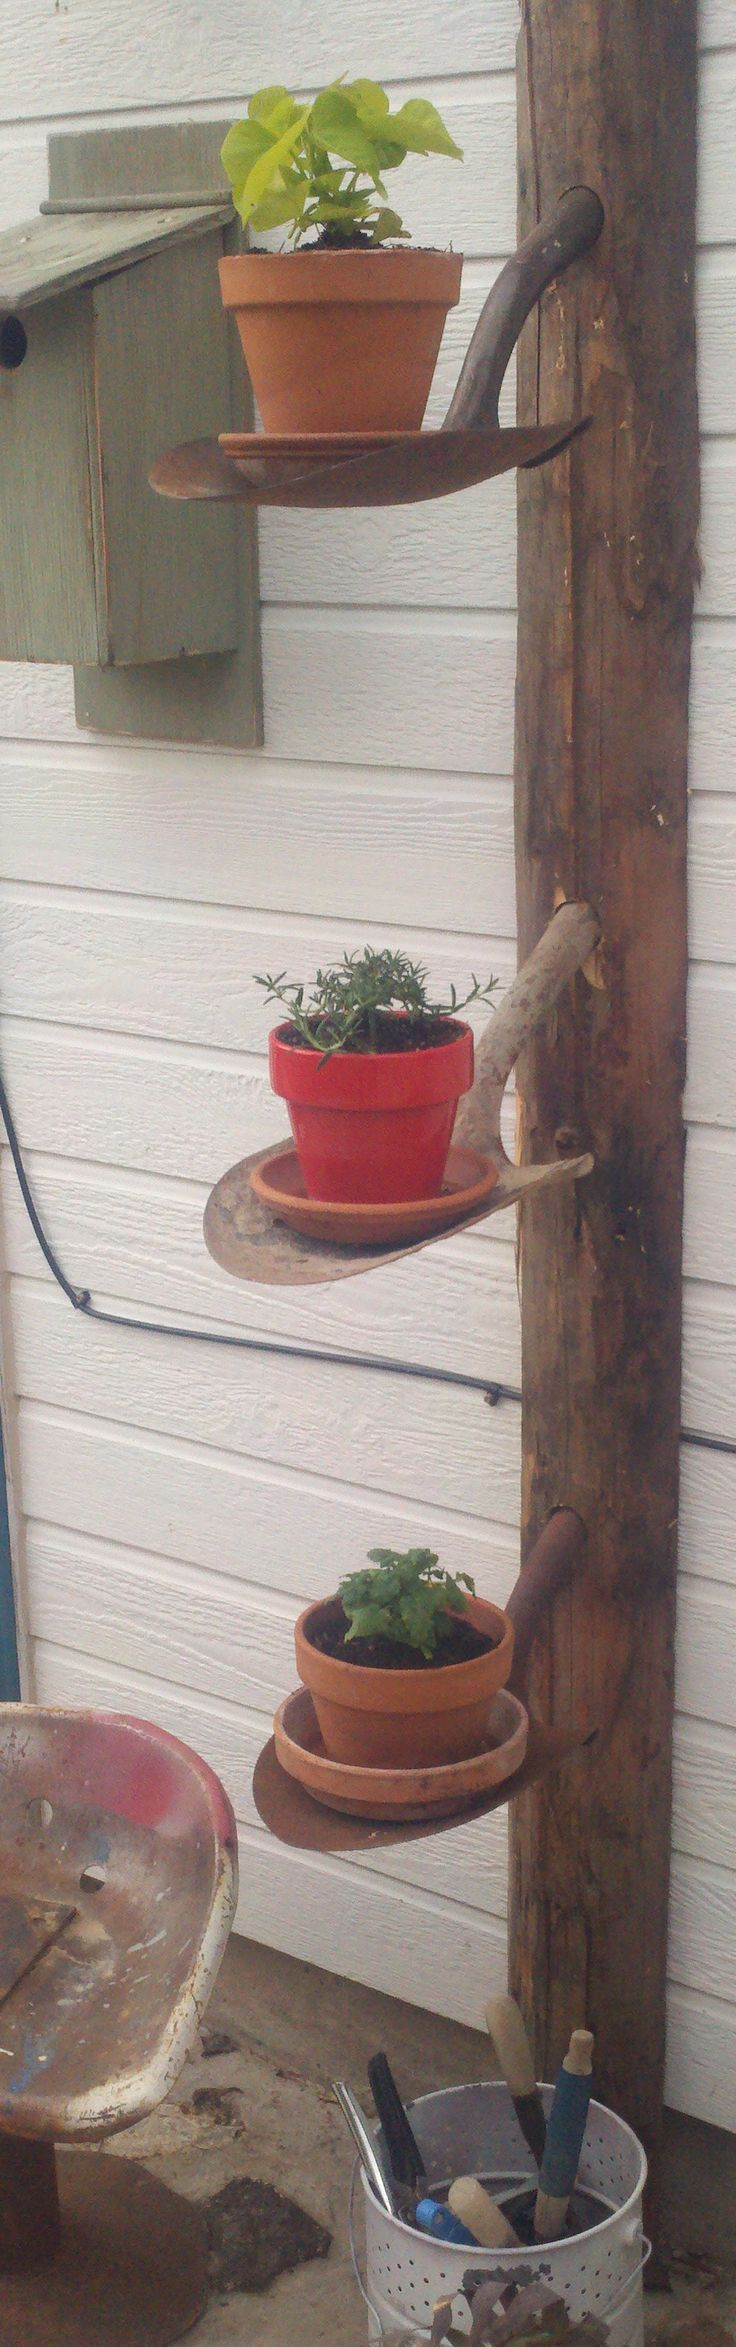 "Old Post & Old Shovel Heads...re-purposed into rustic ""garden shelves""."